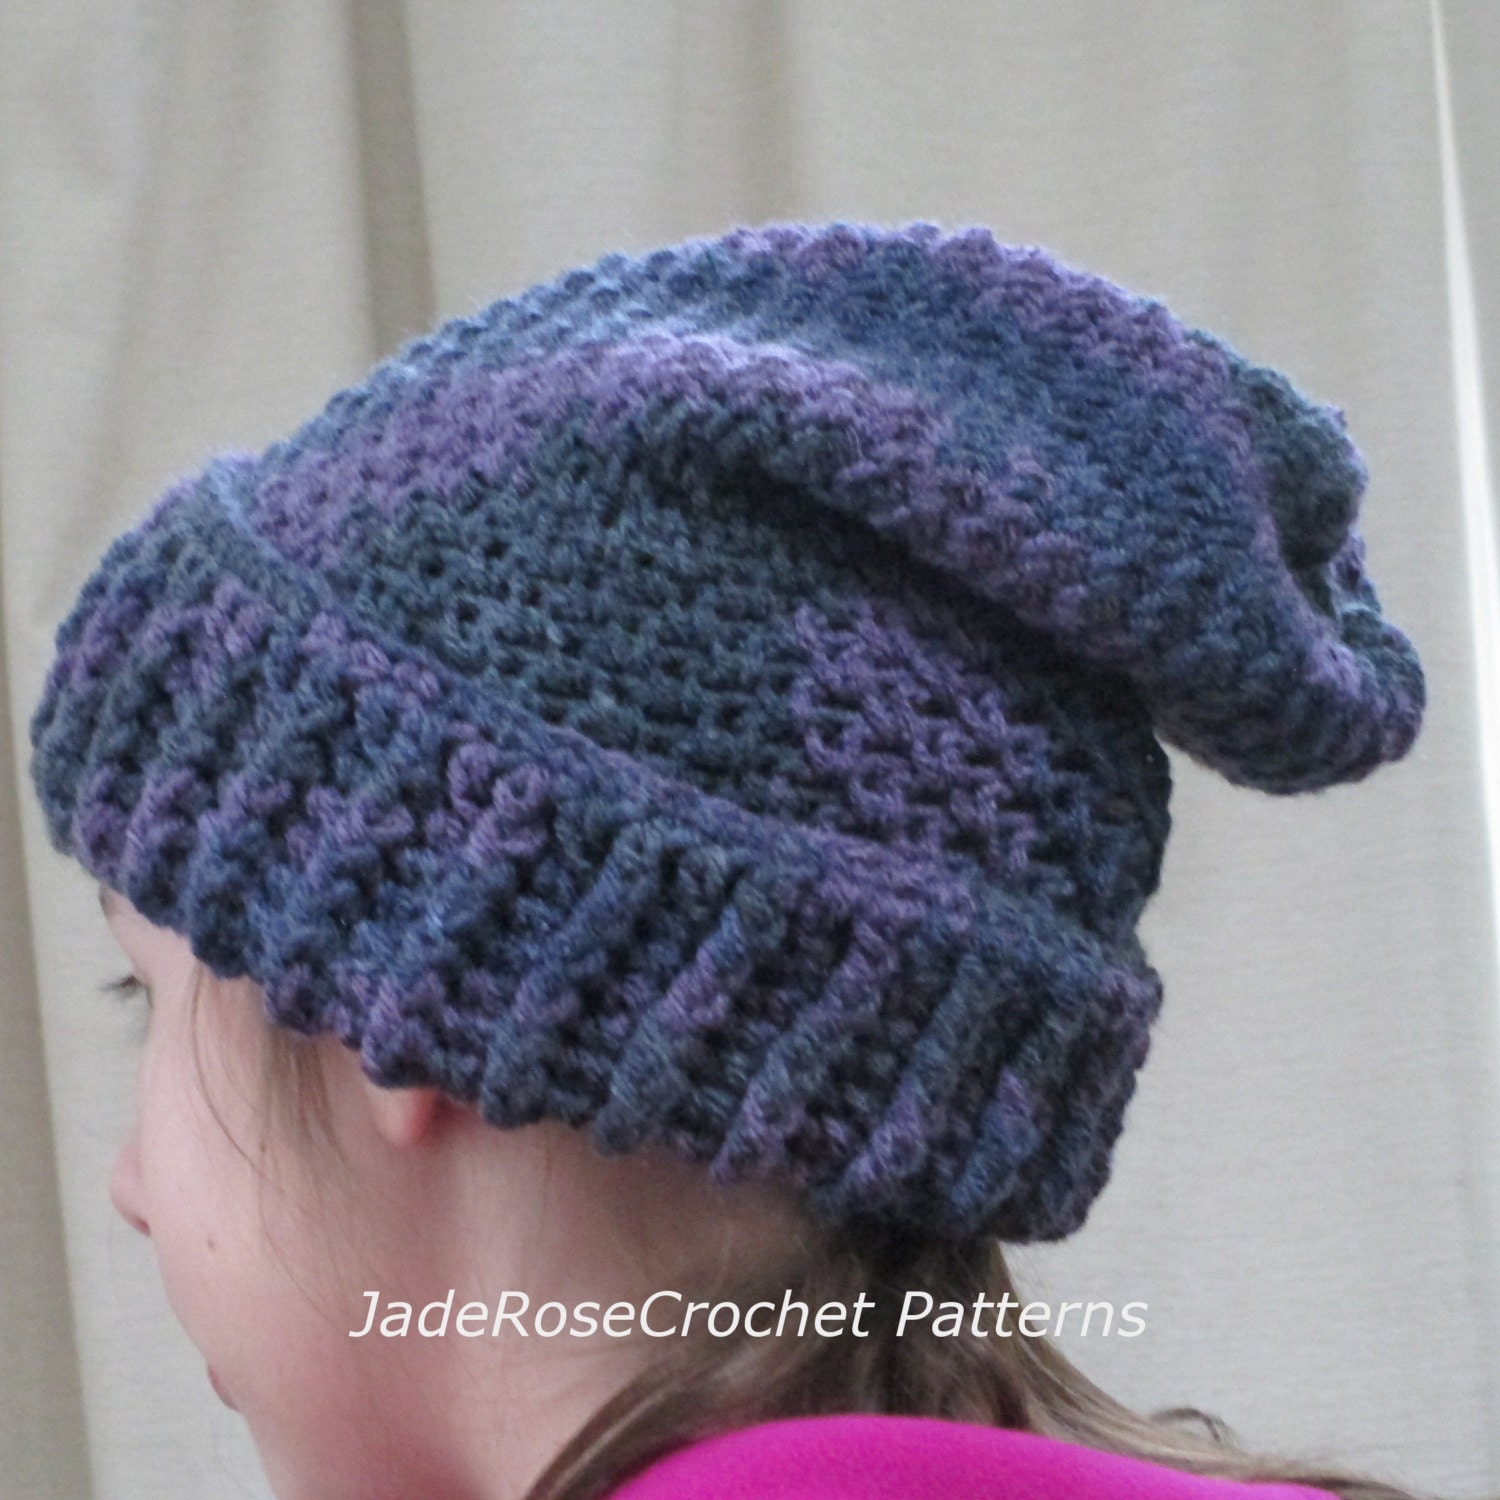 Crochet Pattern Mens Hat With Brim : Crochet Slouchy Hat Pattern Ribbed Brim All Sizes Infant to